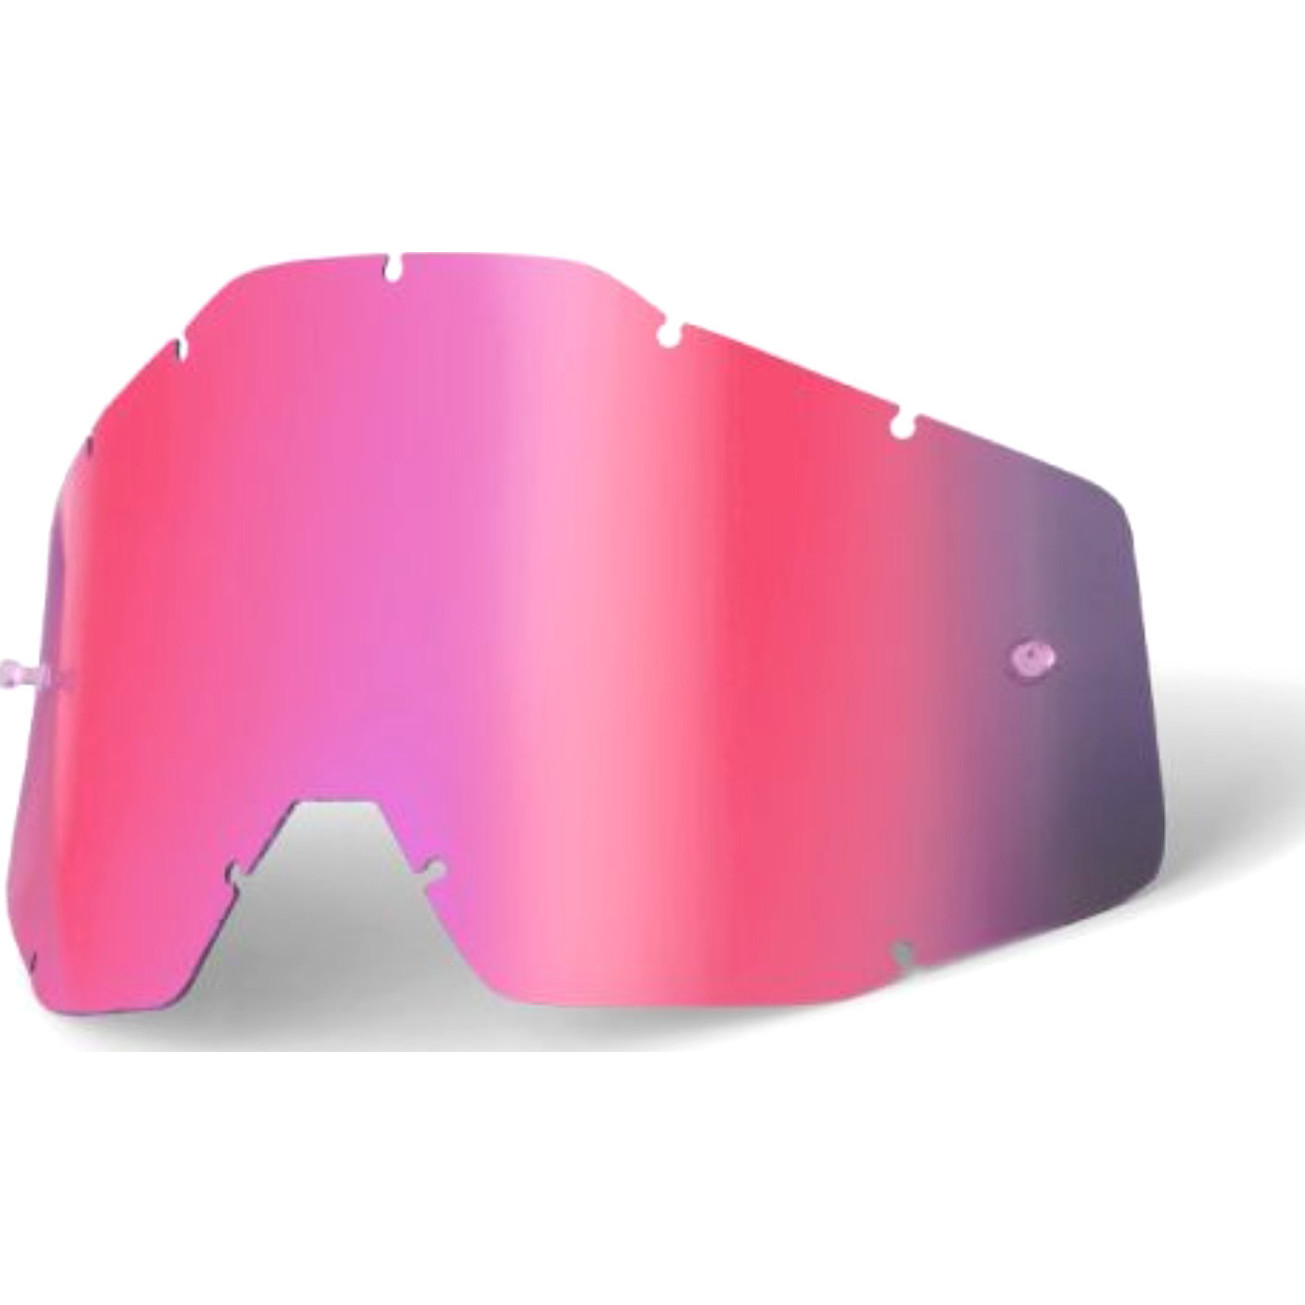 100/% Fits:Racecraft,Accuri,Strata For The Forecast System Goggle Lens,Clear Lens